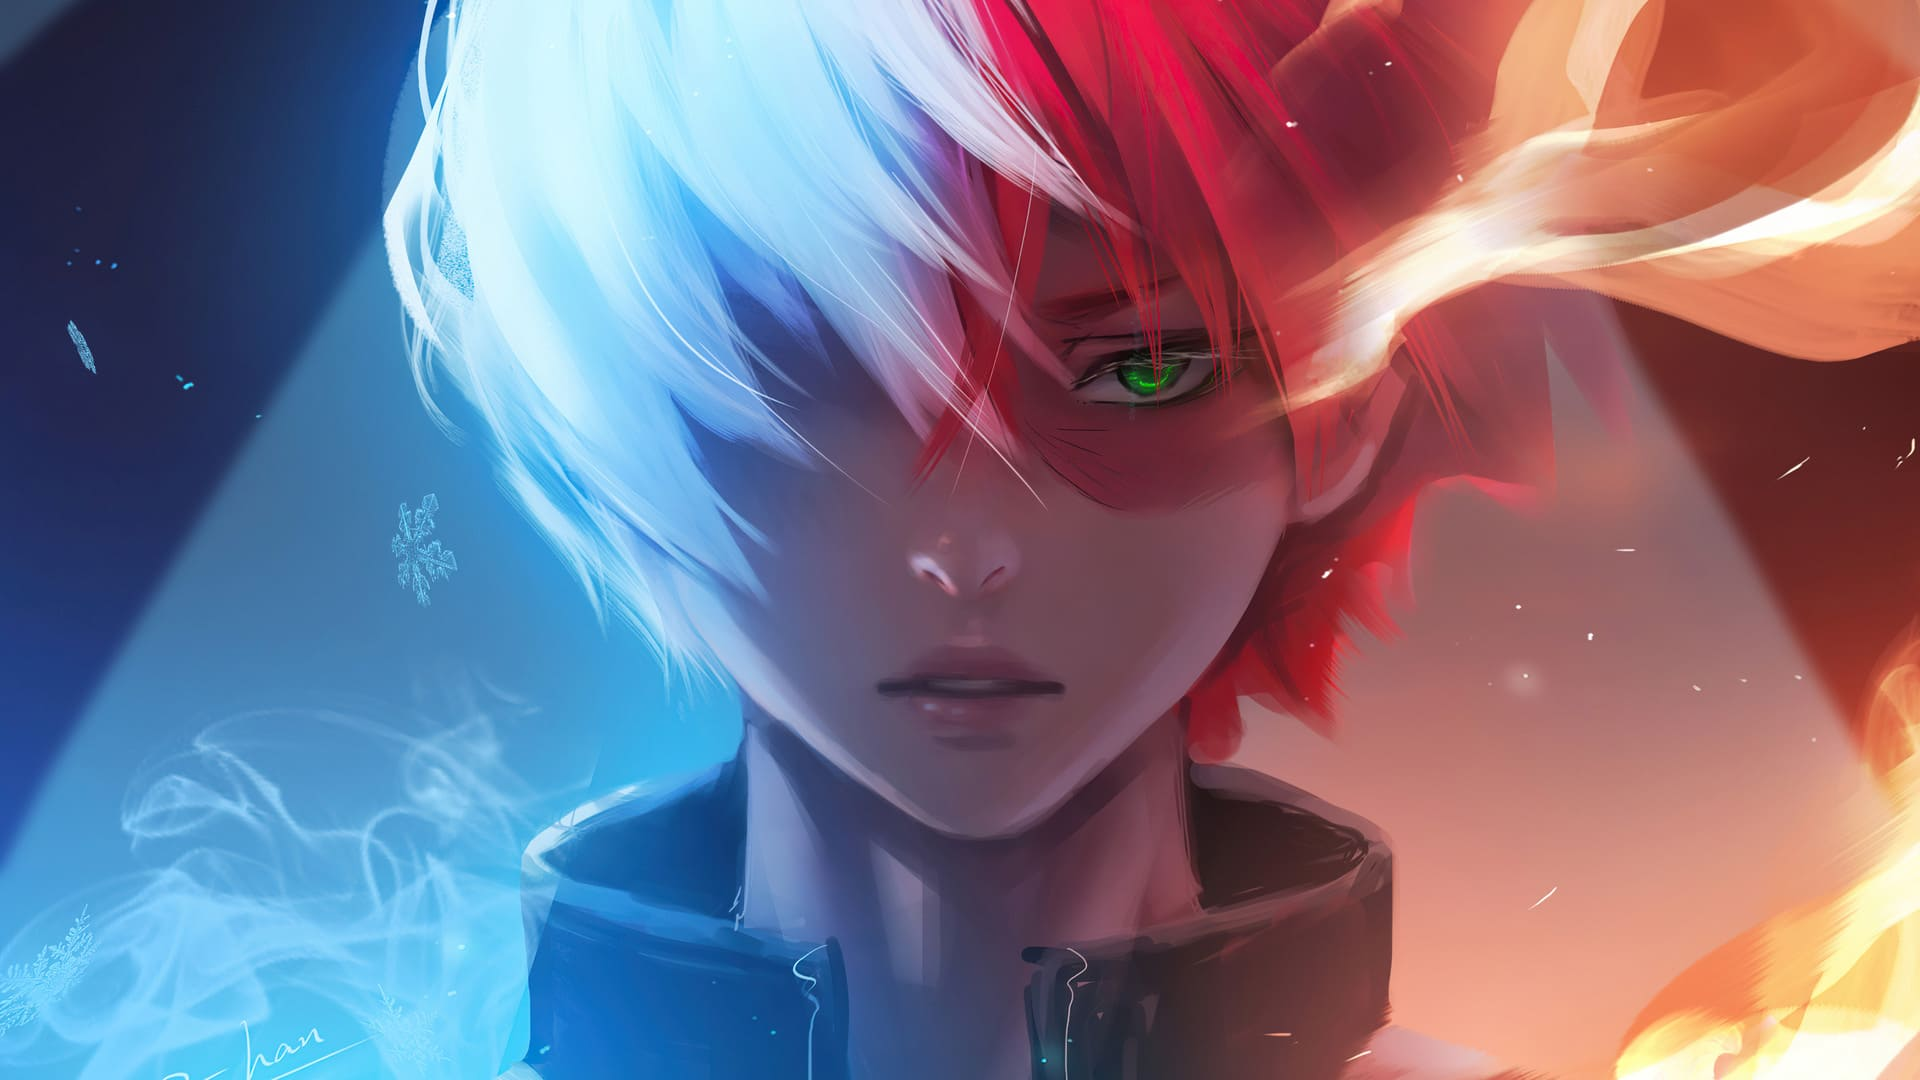 Cool Anime Wallpaper Download High Quality Cool Anime Wallpaper